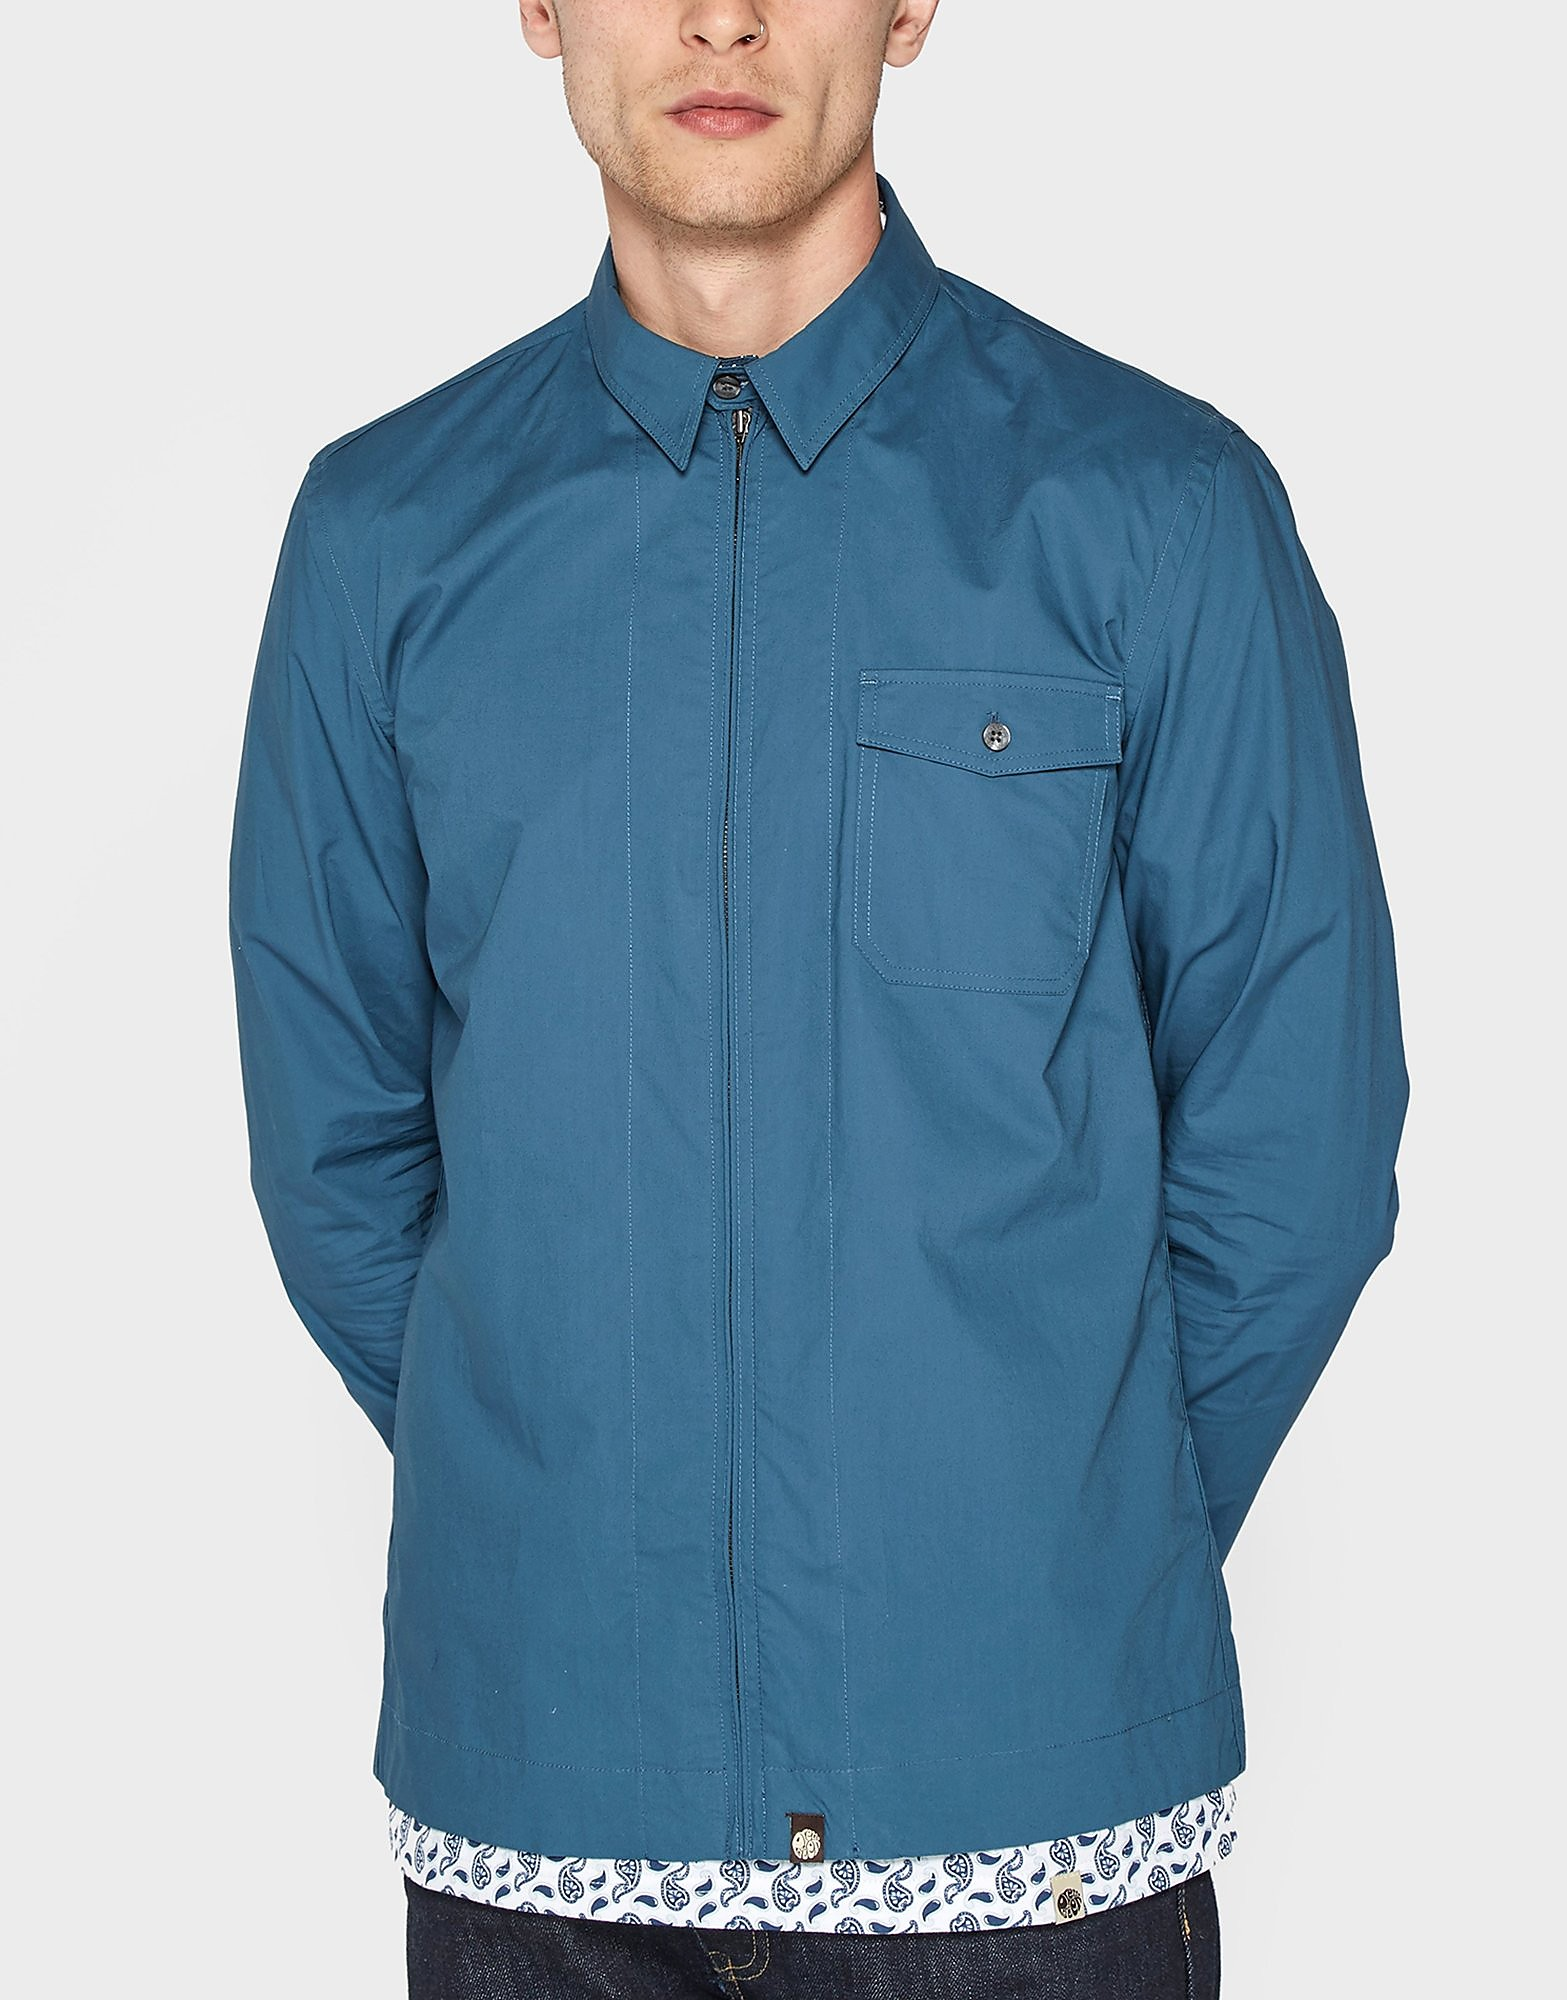 Pretty Green Zip Teal Shirt - Exclusive